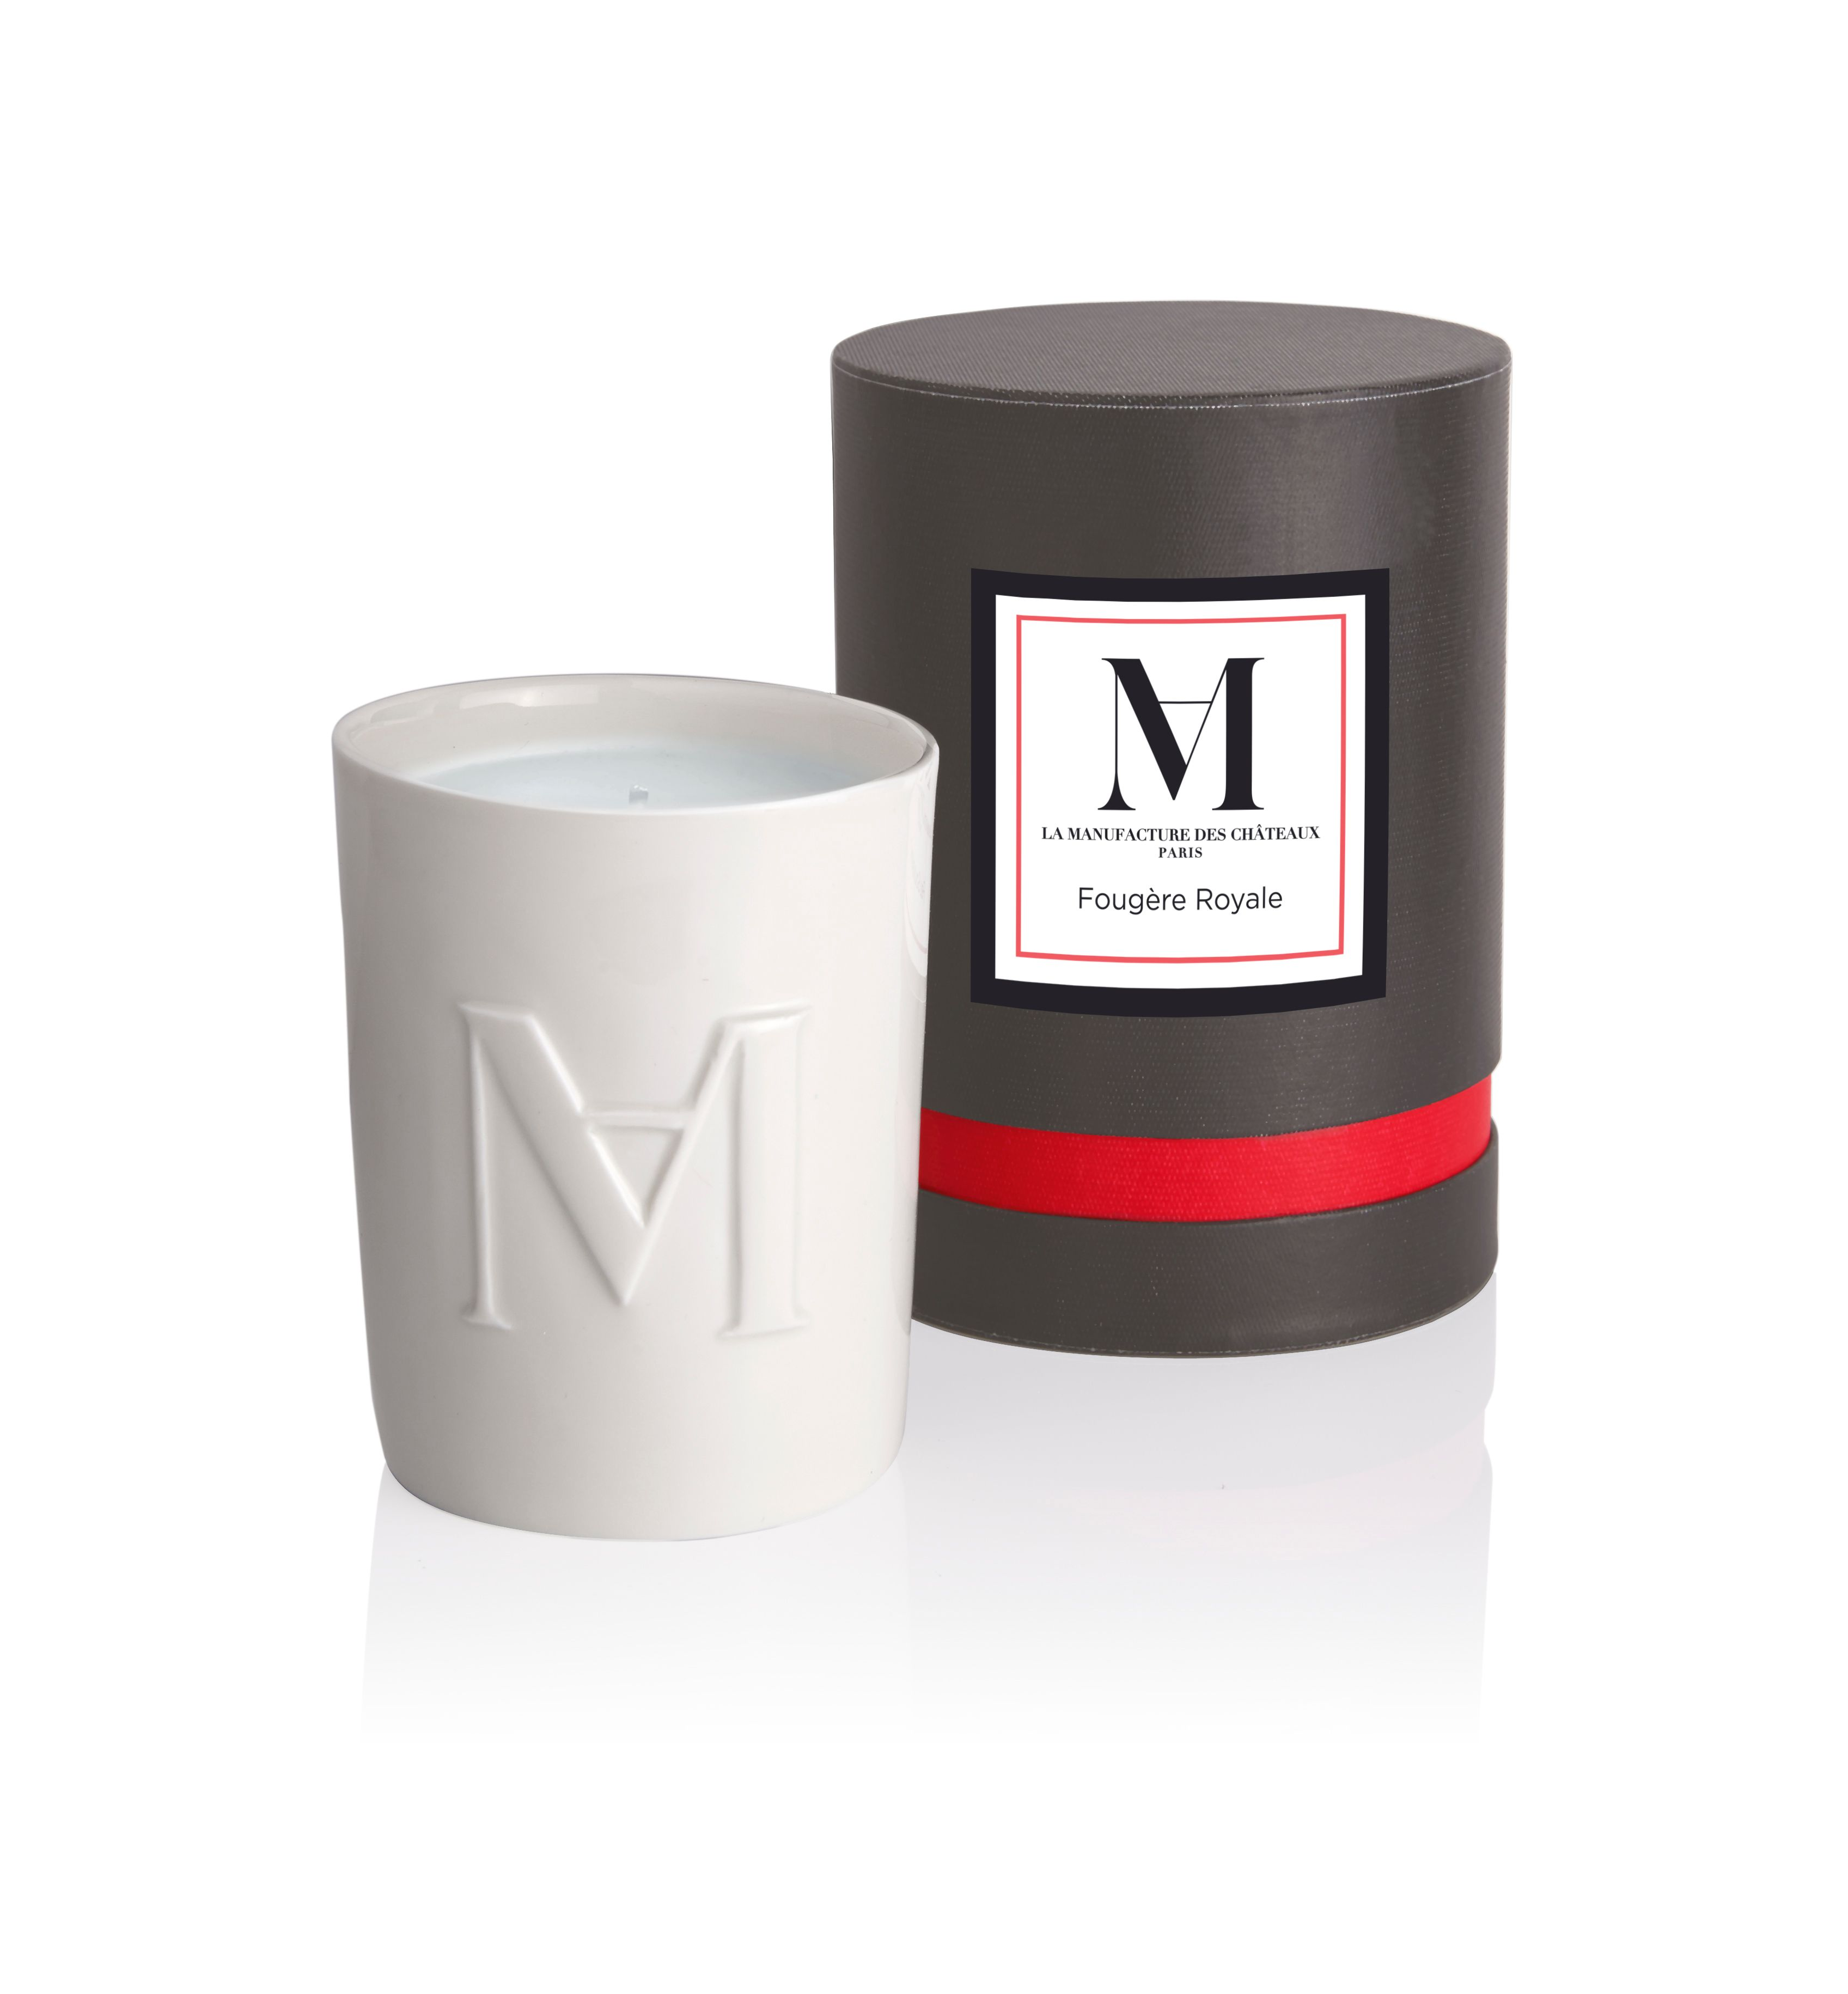 Image of La Manufacture Fougere Royale Candle 200g